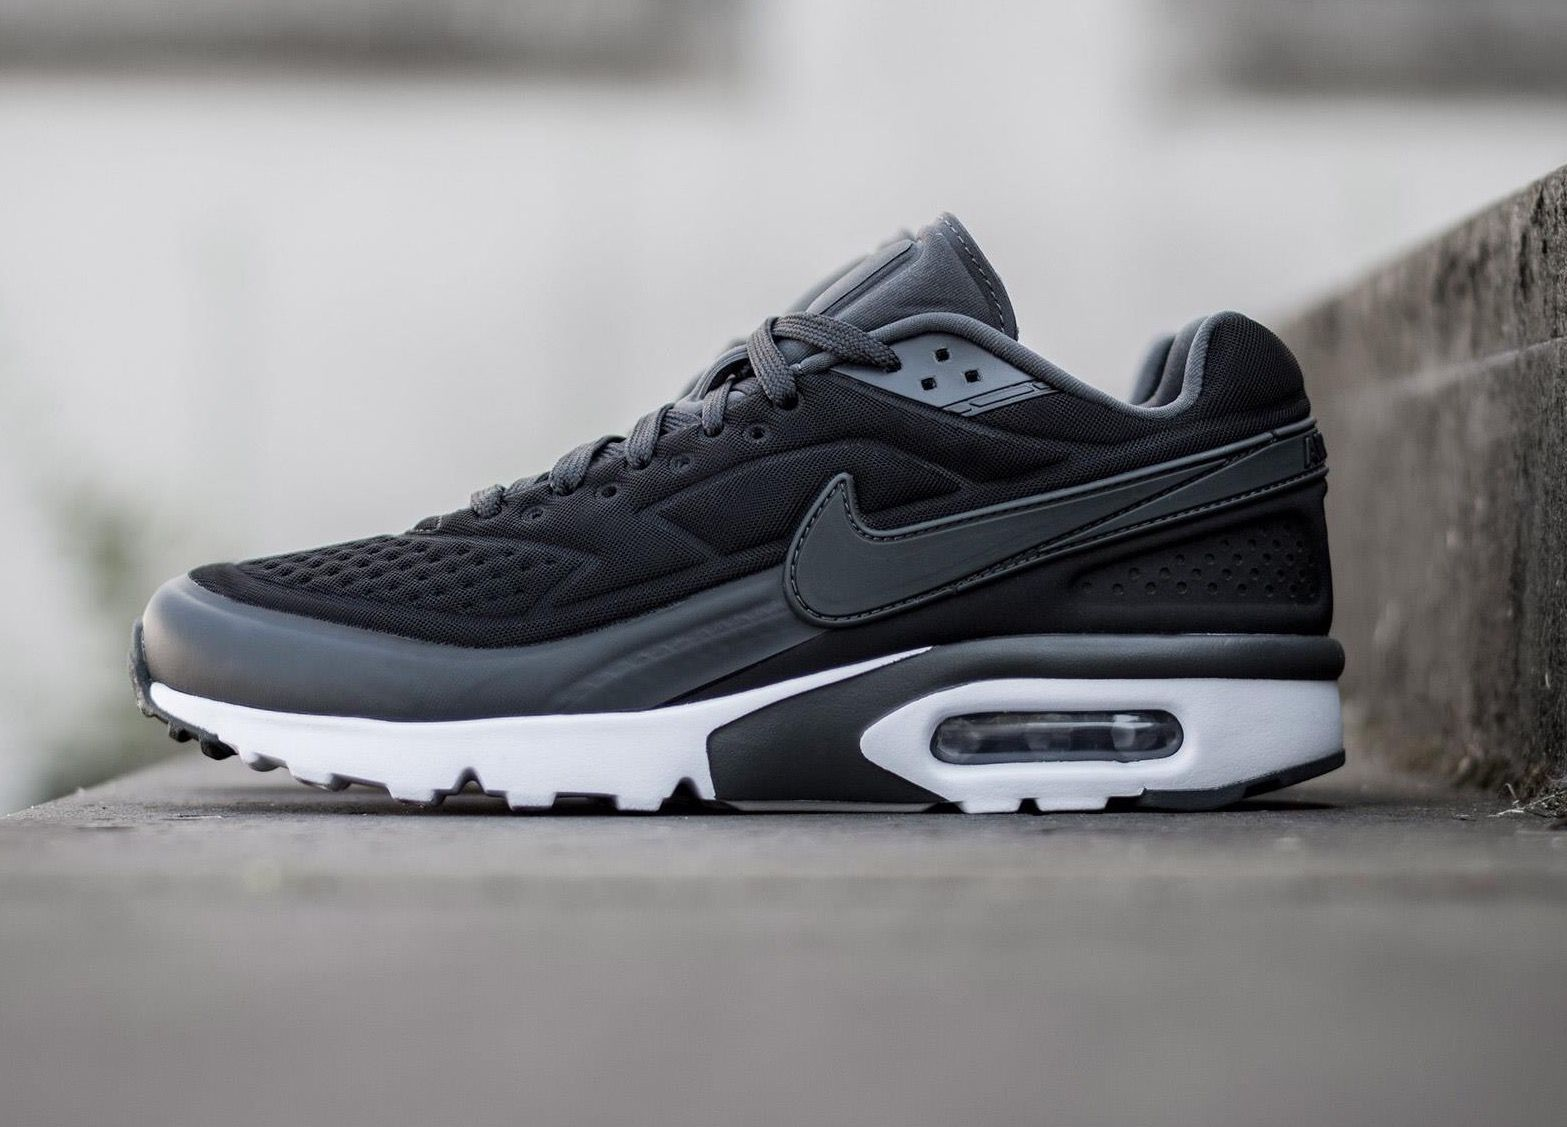 Nike Air Classic BW Ultra: Black/Grey | shoes in 2019 | Sneakers ...